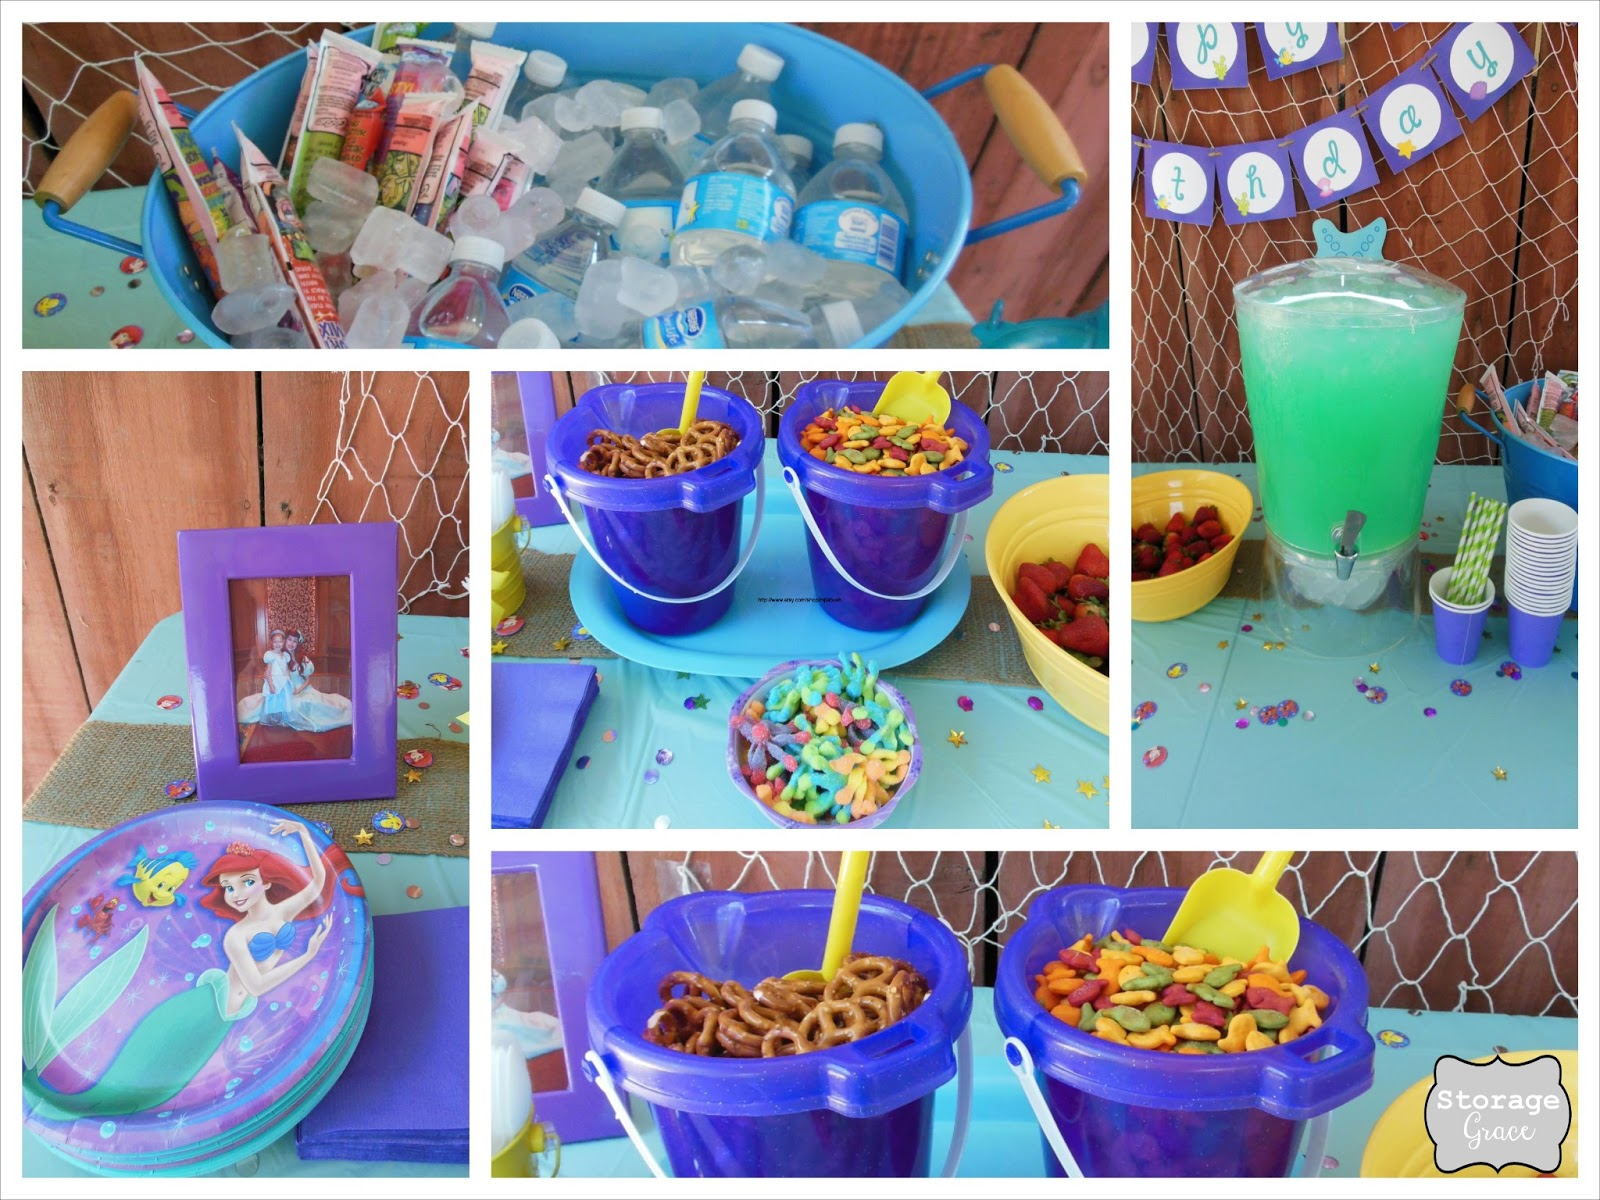 Storage grace little mermaid 4th birthday party for Ariel party decoration ideas